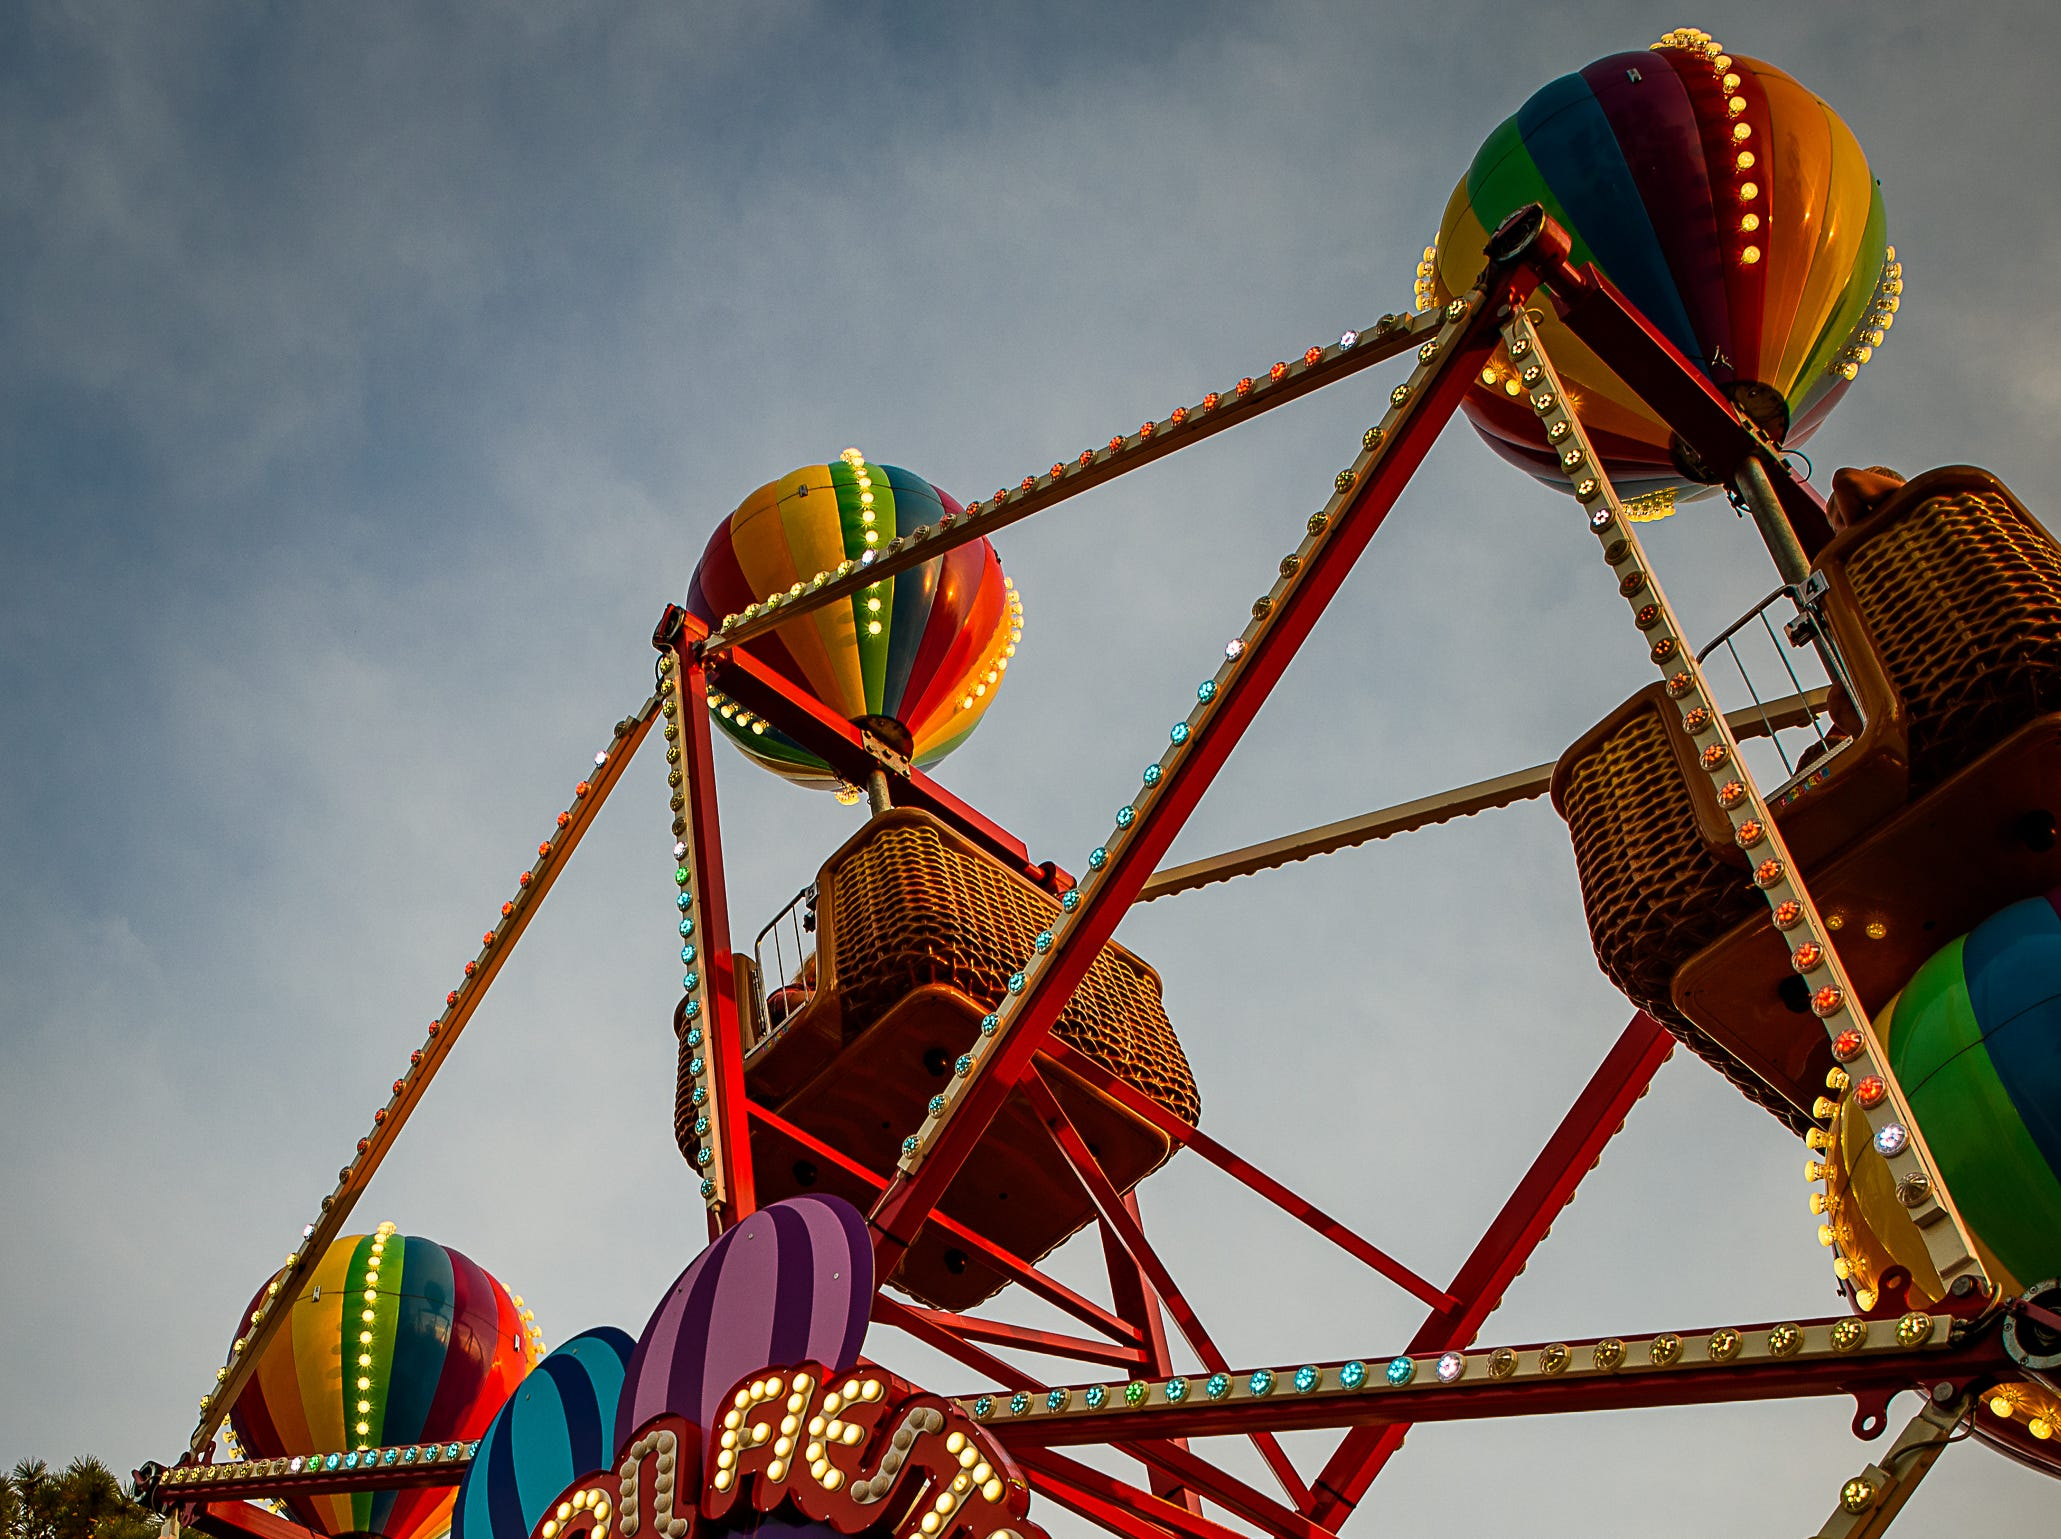 A smaller ferris wheel was available for the younger fair-goers at the Chincoteague Fireman's Carnival.